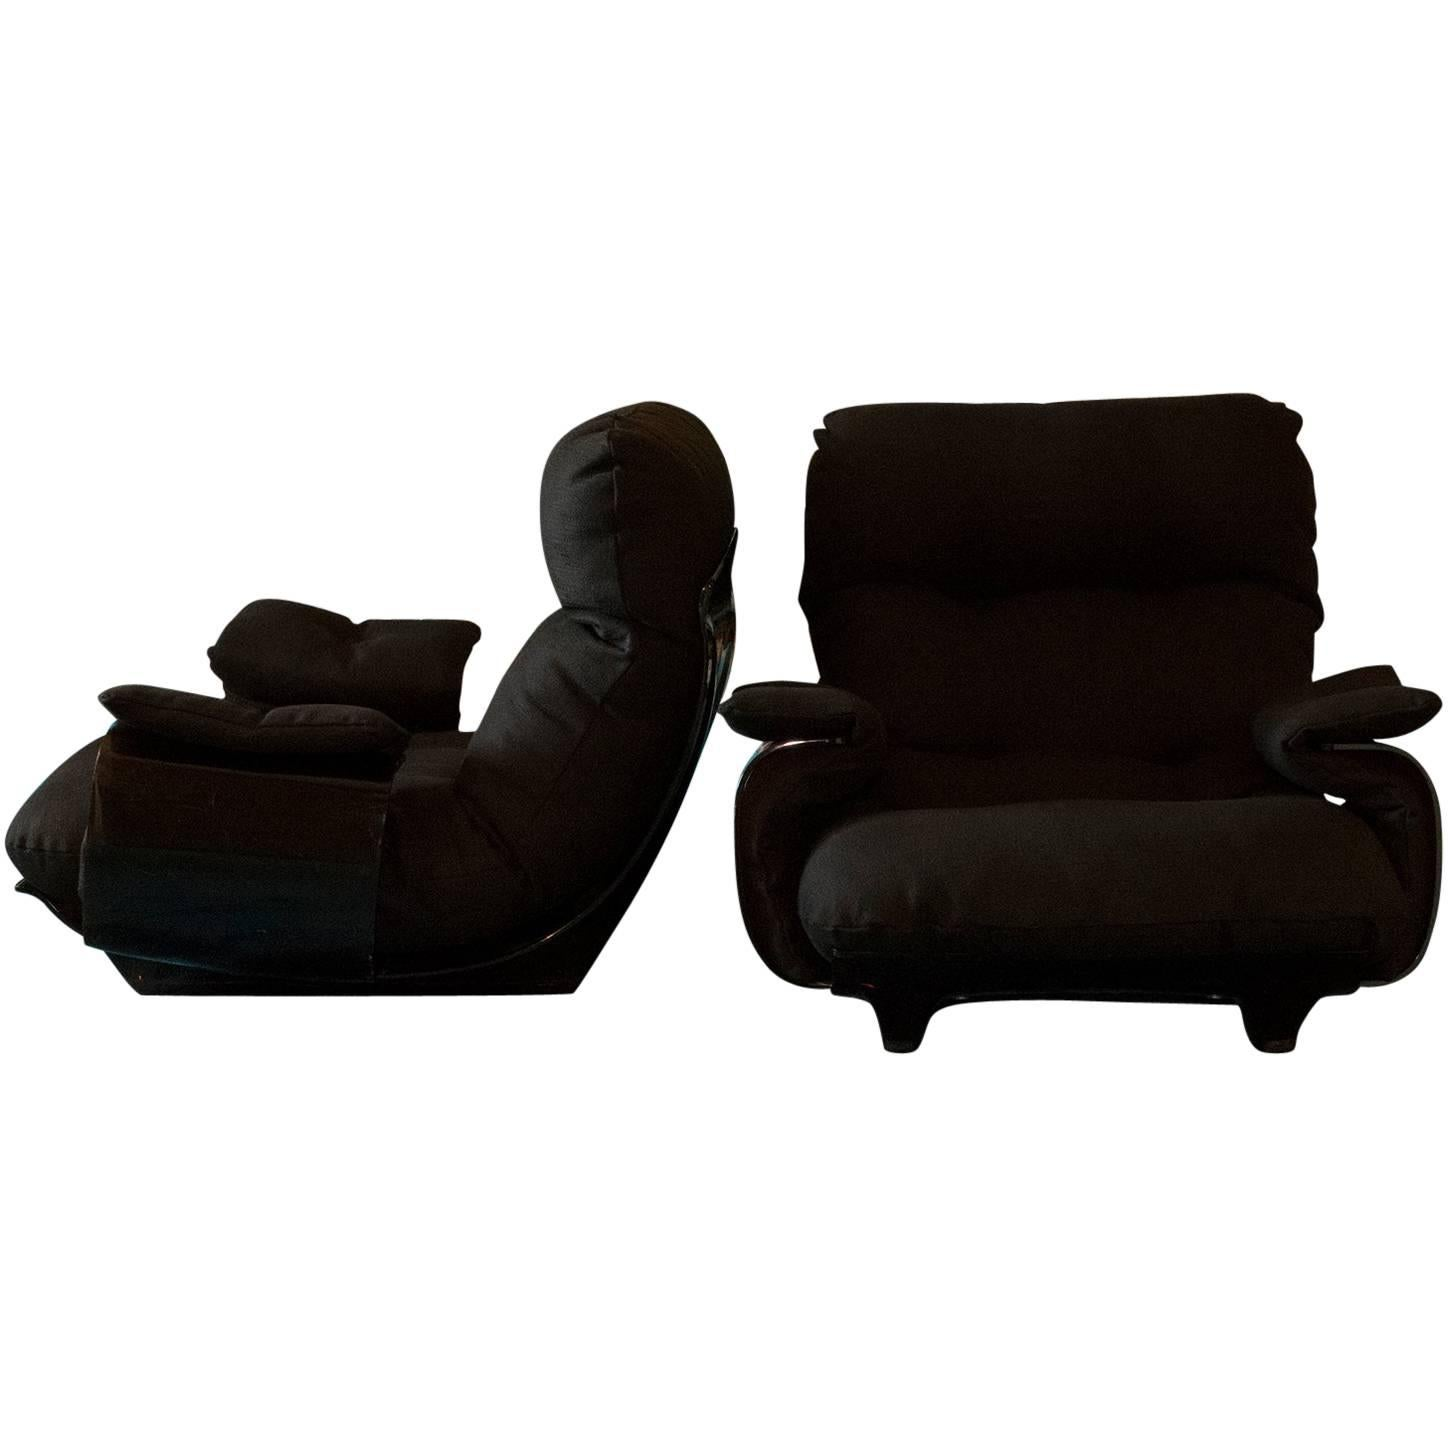 Marsala Lounge Chairs By Ligne Roset, France, 1970 1